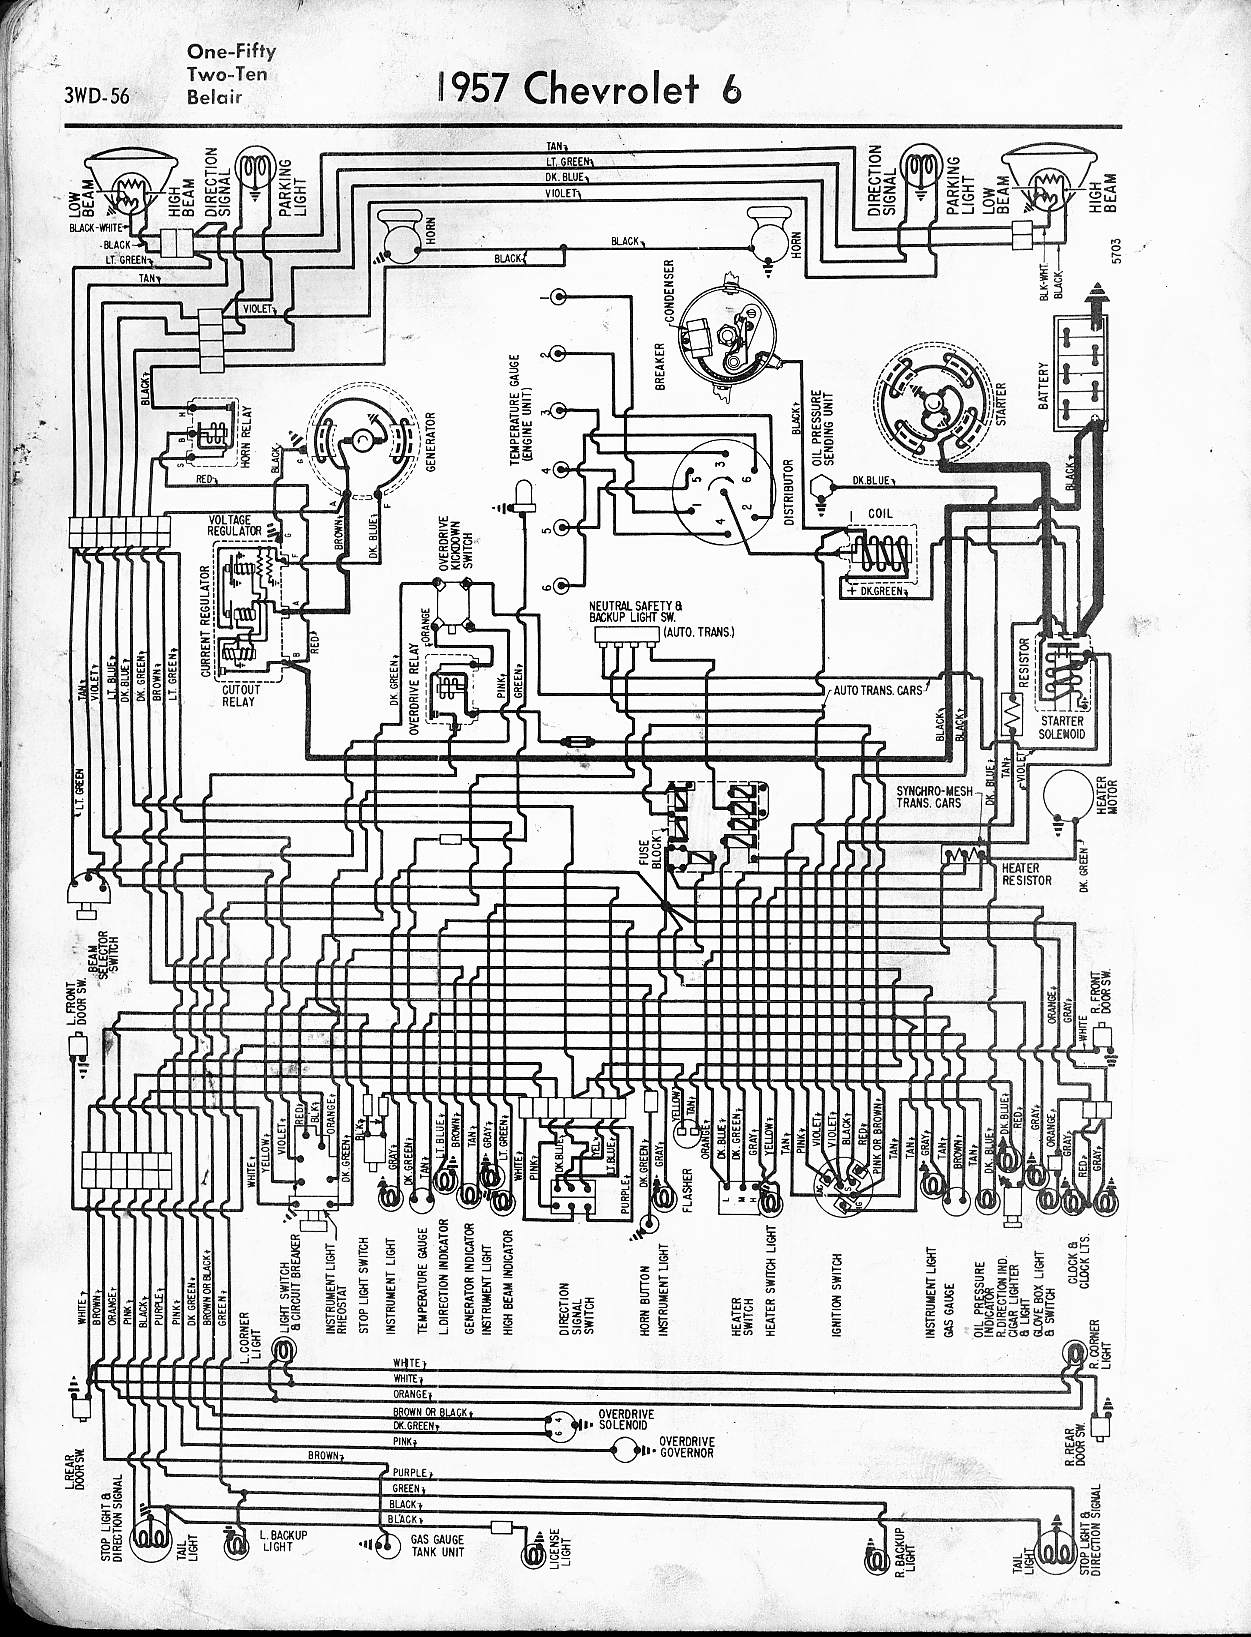 57 Corvette Fuse Box Wiring Library Diagram Besides 2000 Oldsmobile Intrigue Likewise 1957 6 Cyl One Fifty Two Ten Belair 65 Chevy Diagrams